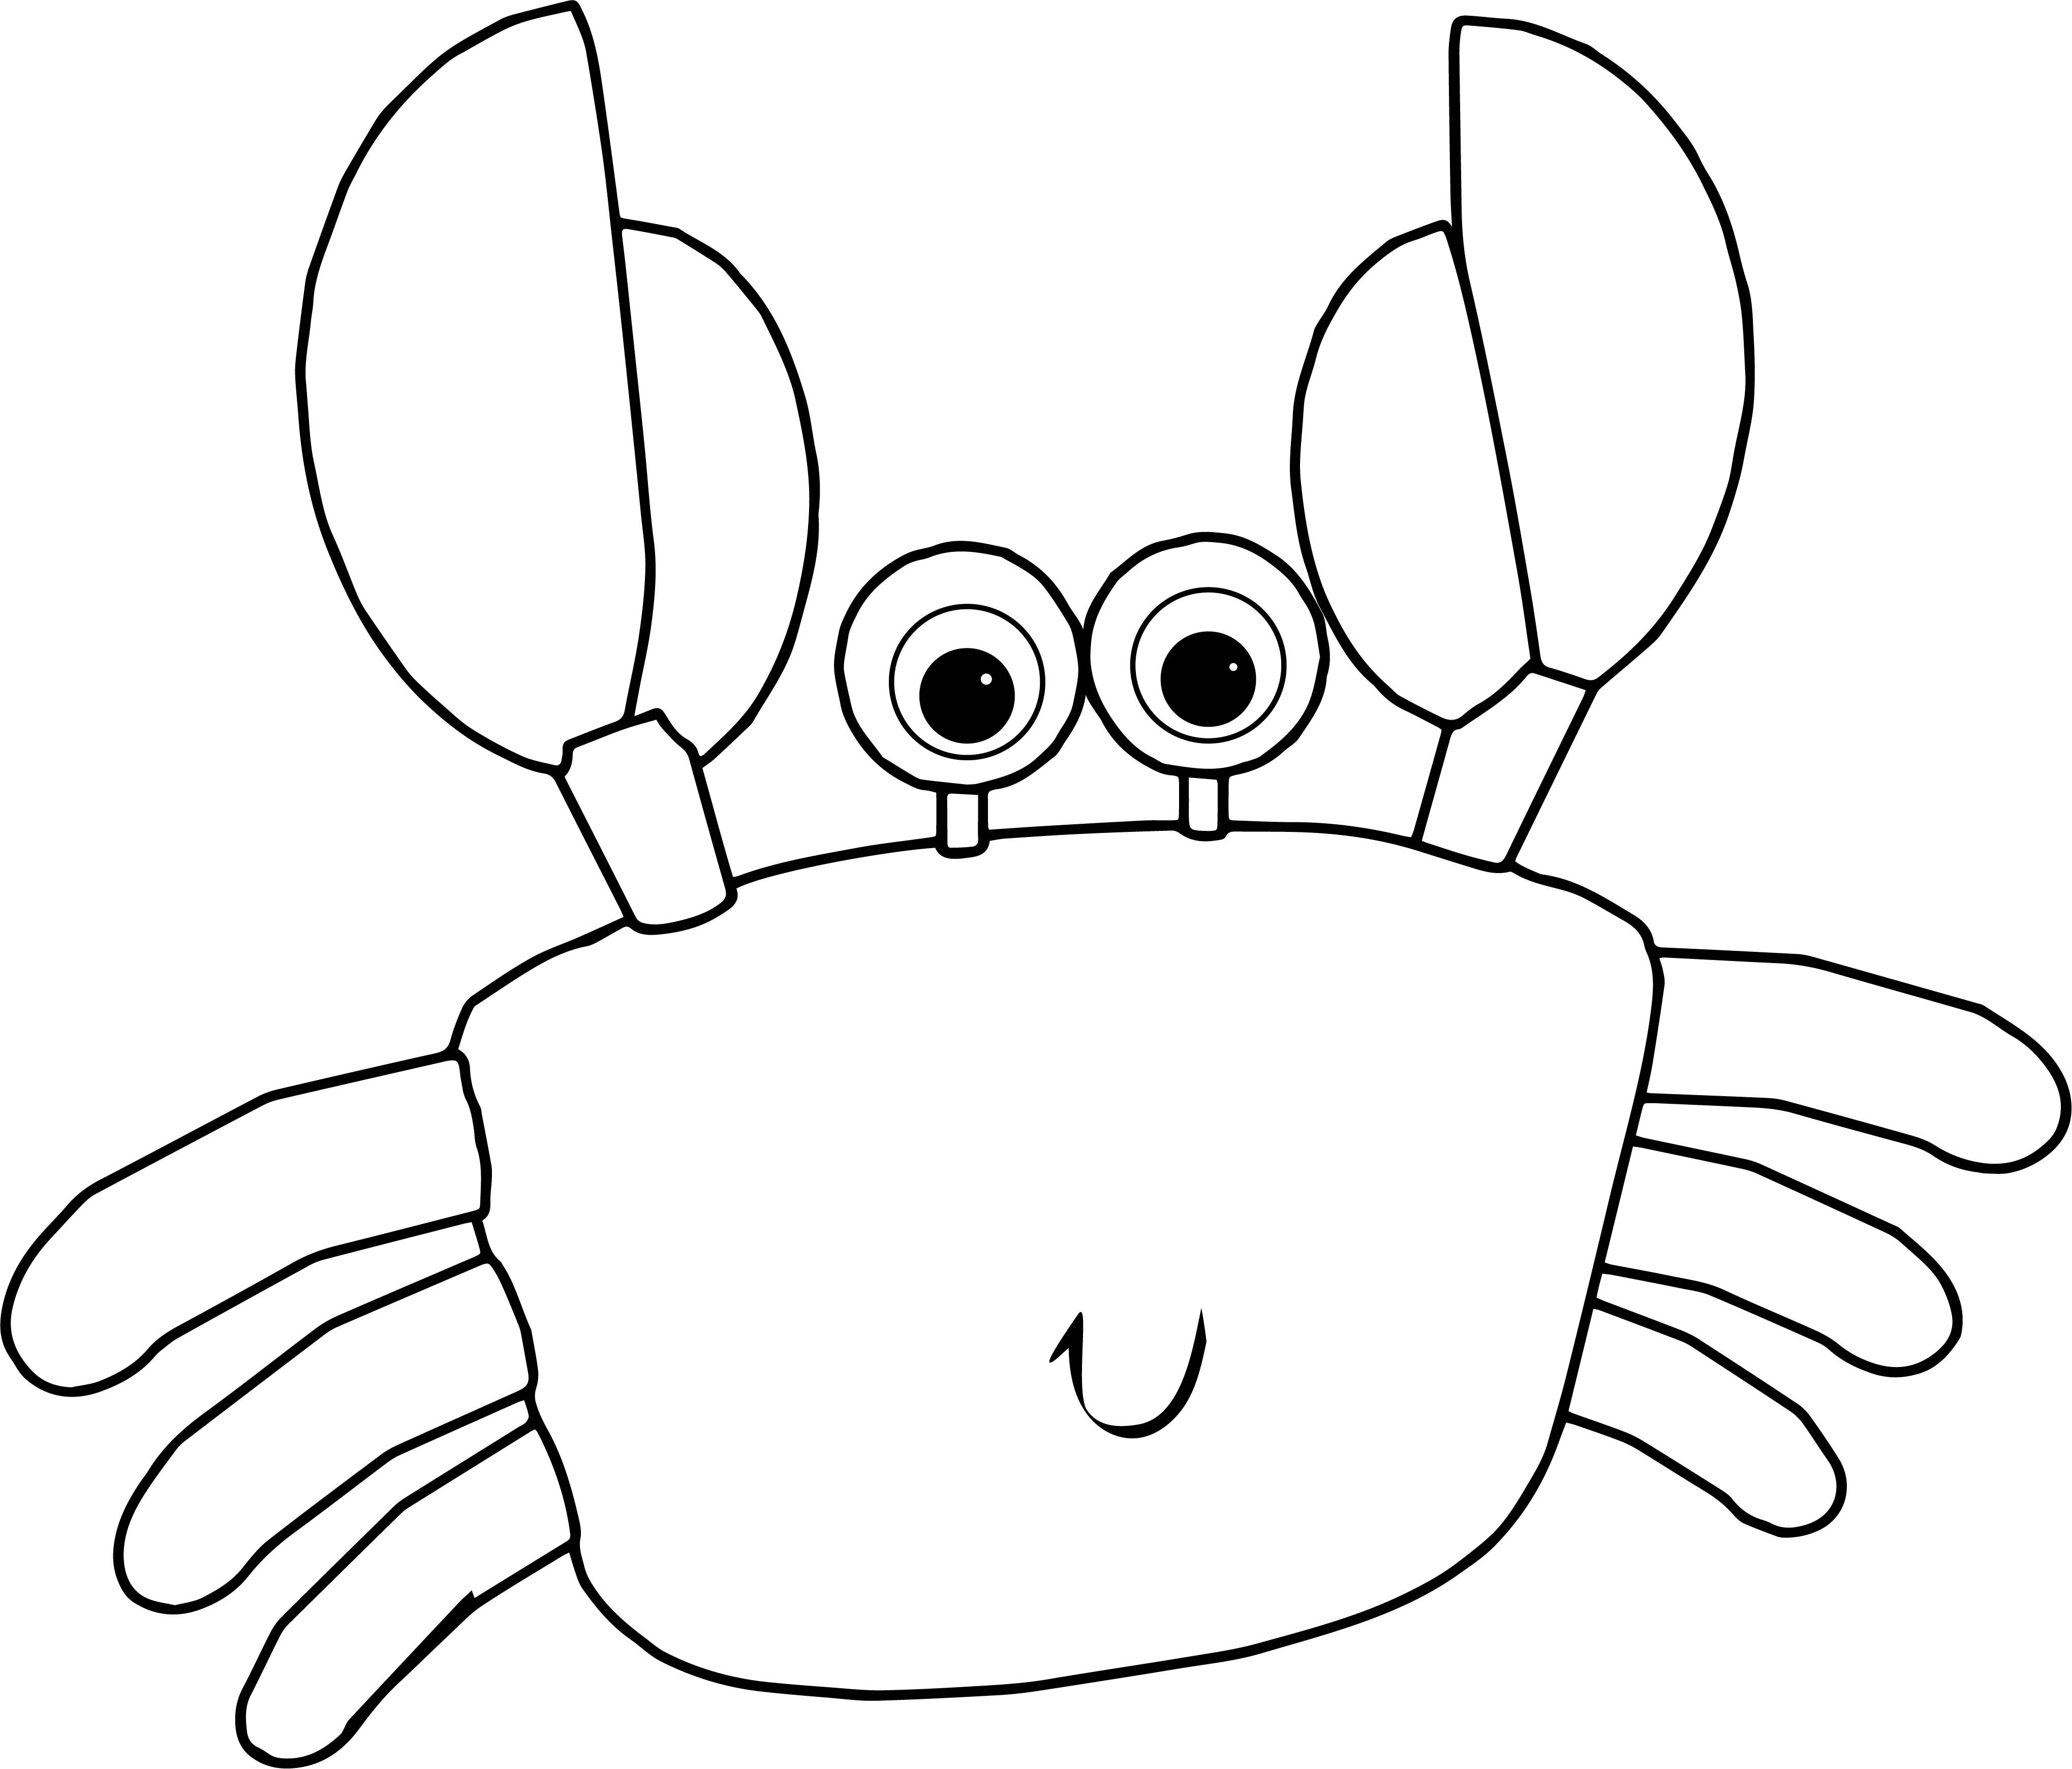 Awesome Crab Cartoon Coloring Page Cartoon Coloring Pages Crab